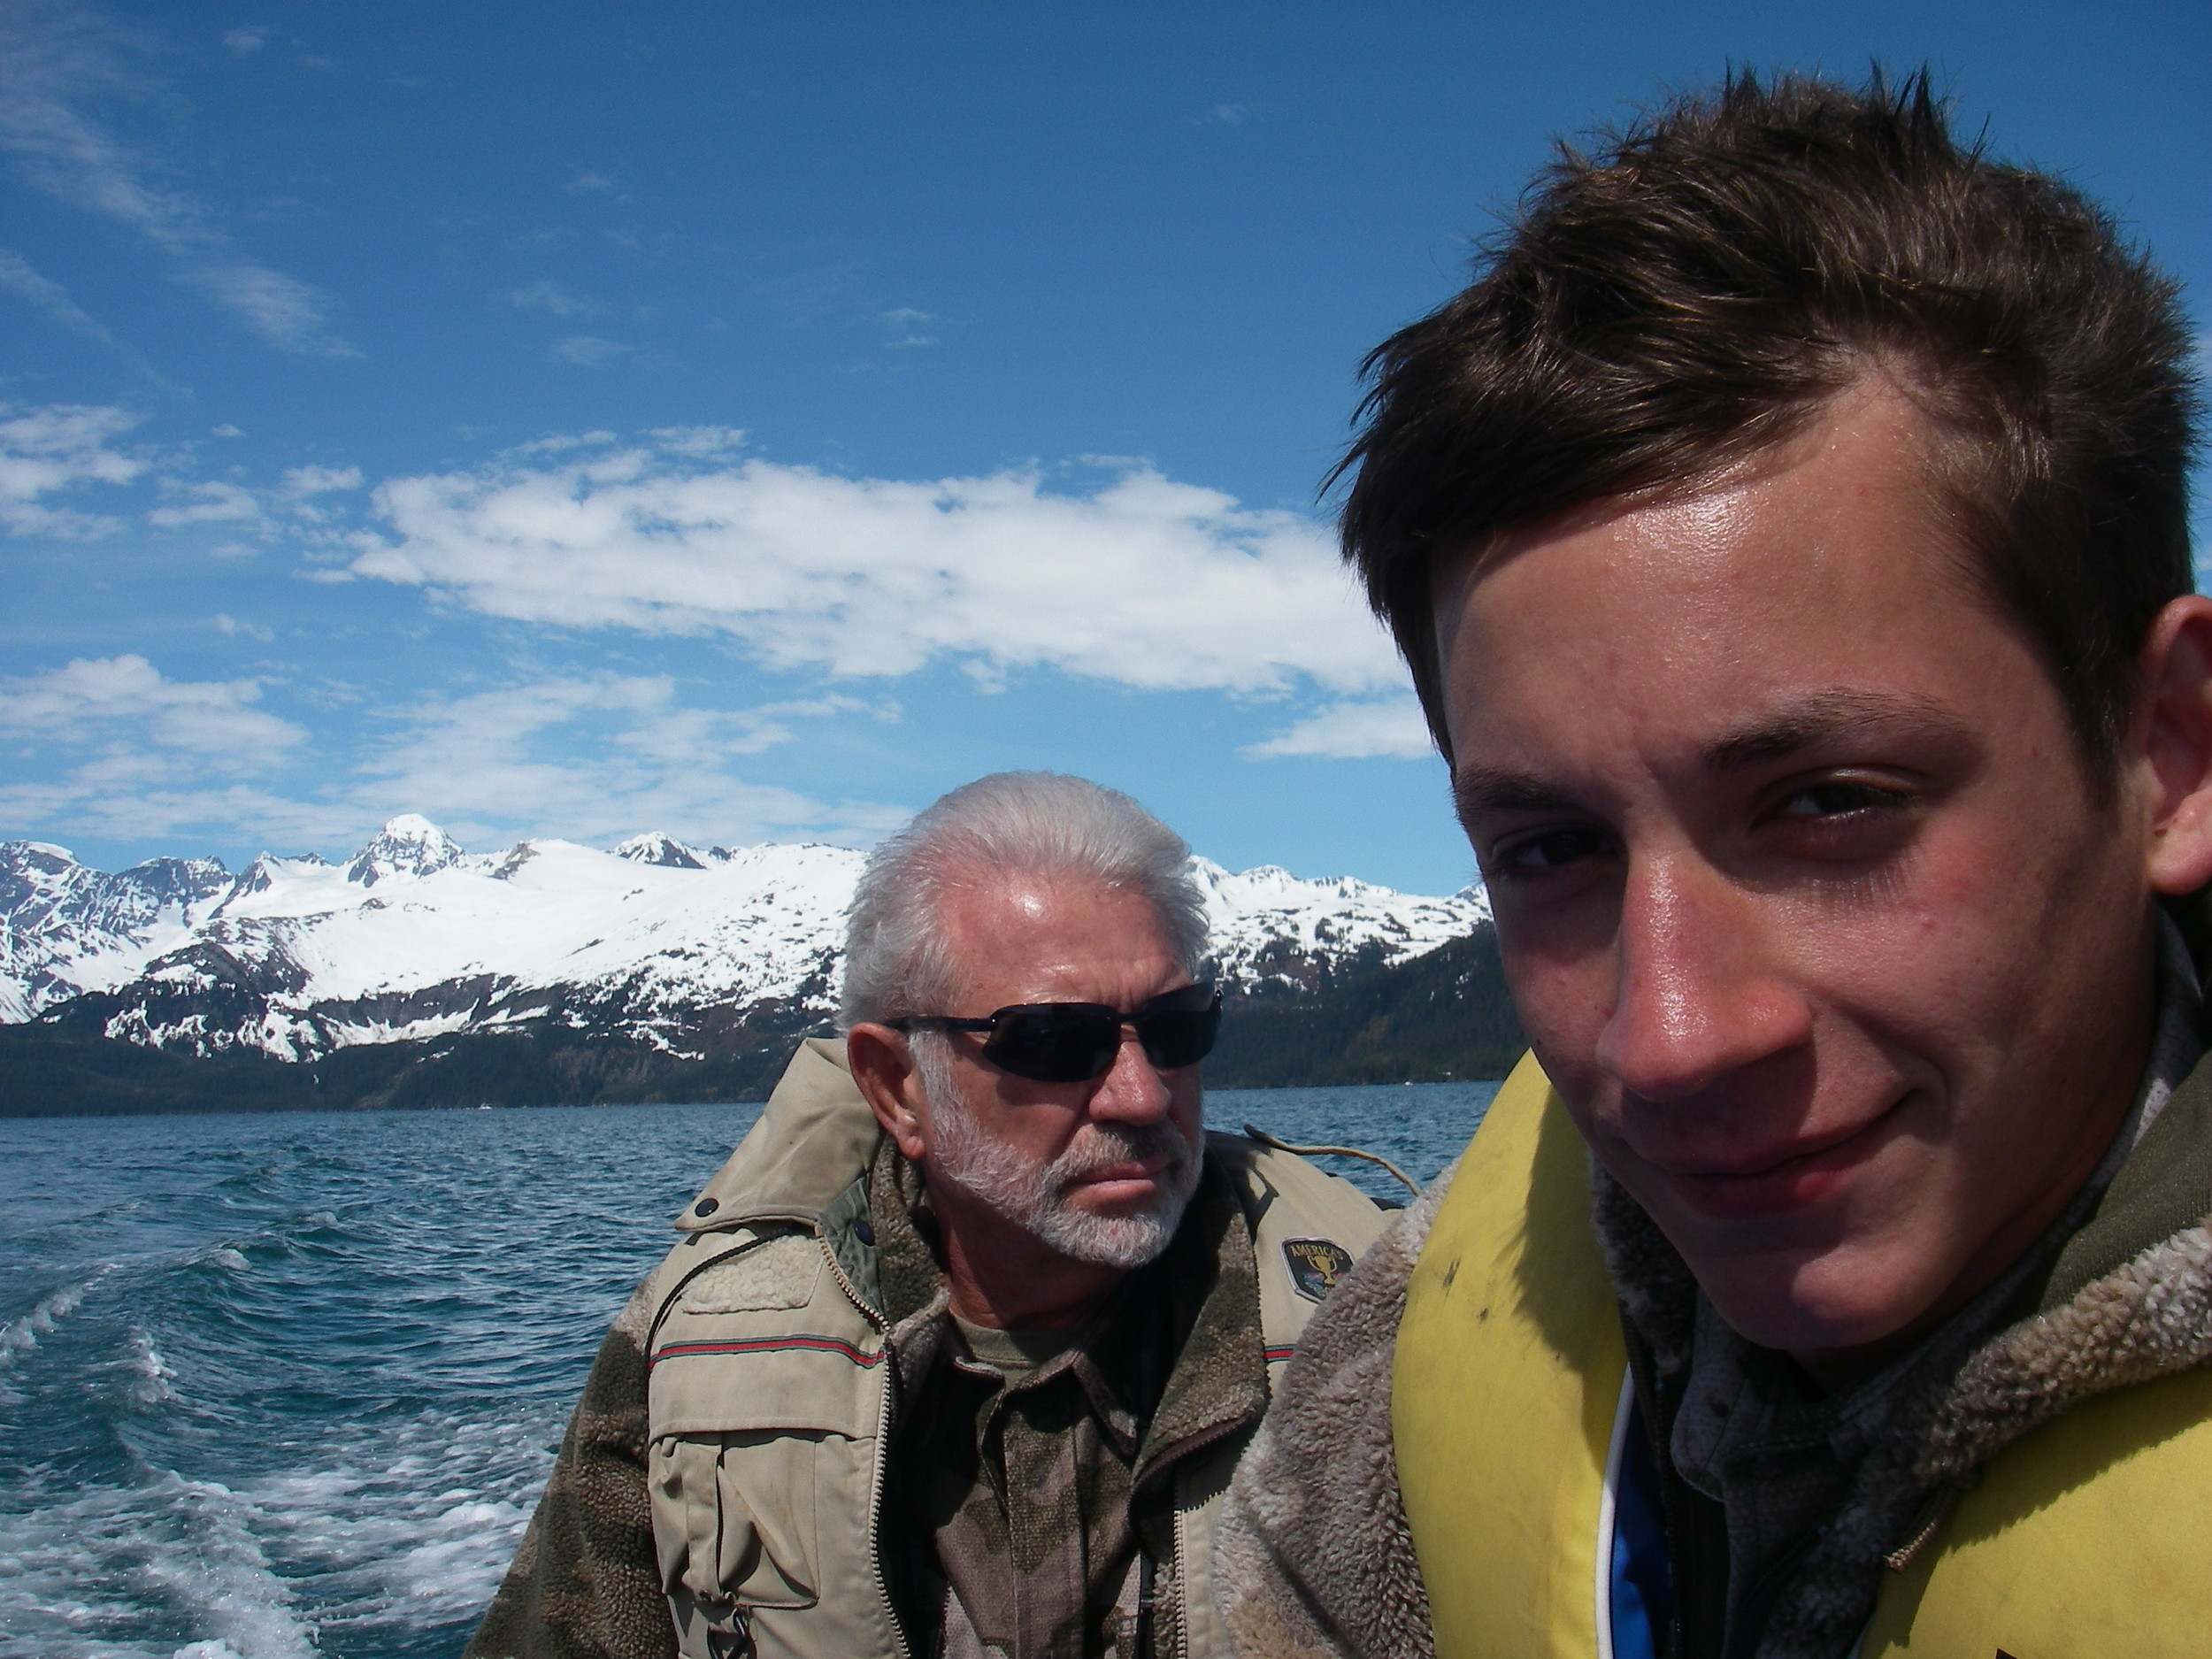 Jared and me in the Zodiac on one of those beautiful spring days in Prince William Sound.  I'm going to miss that place.